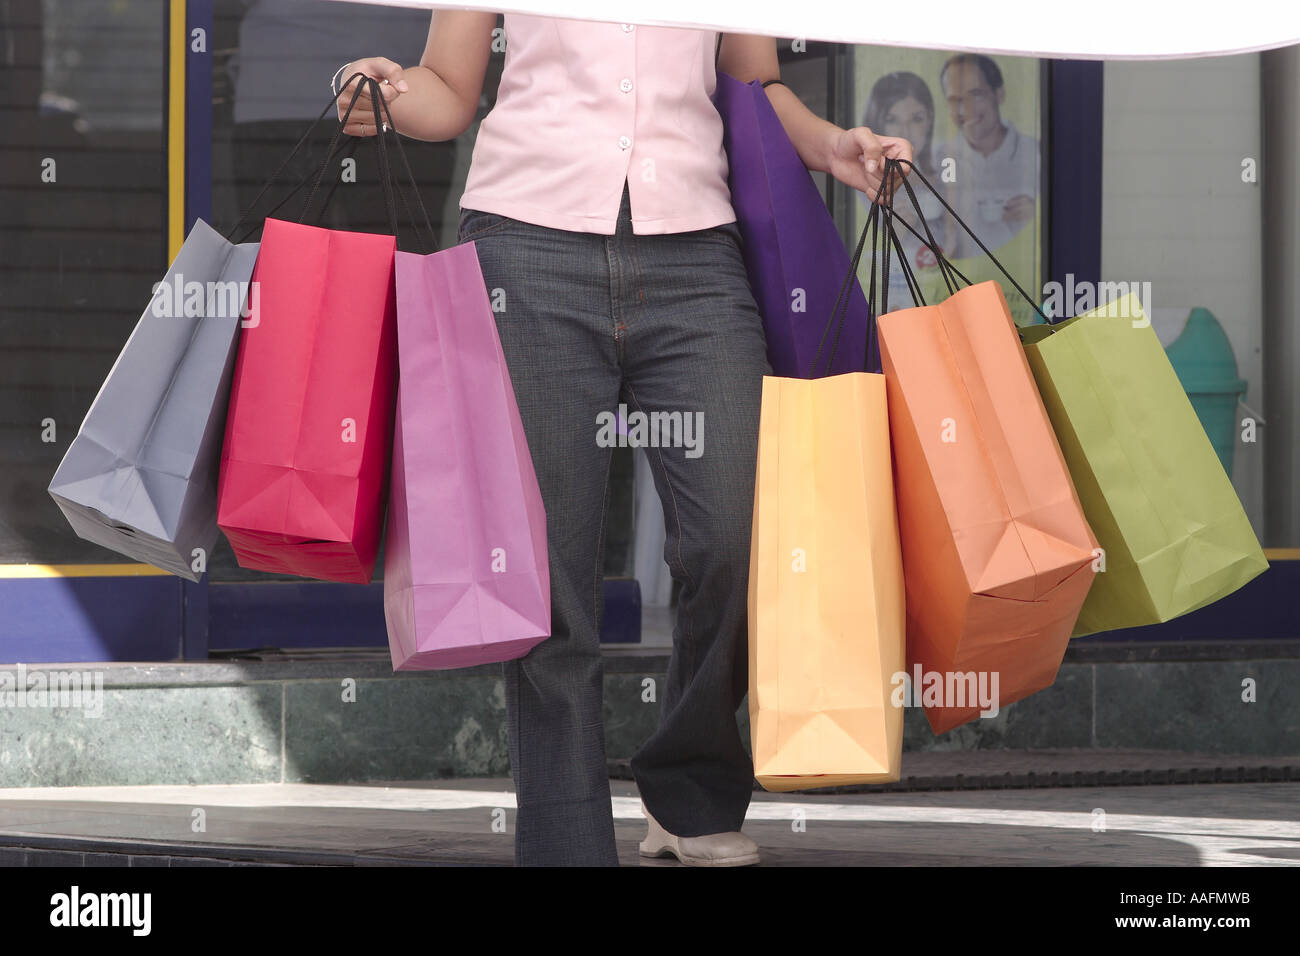 Shopping bags six three in both hands held by lady girl women in ...